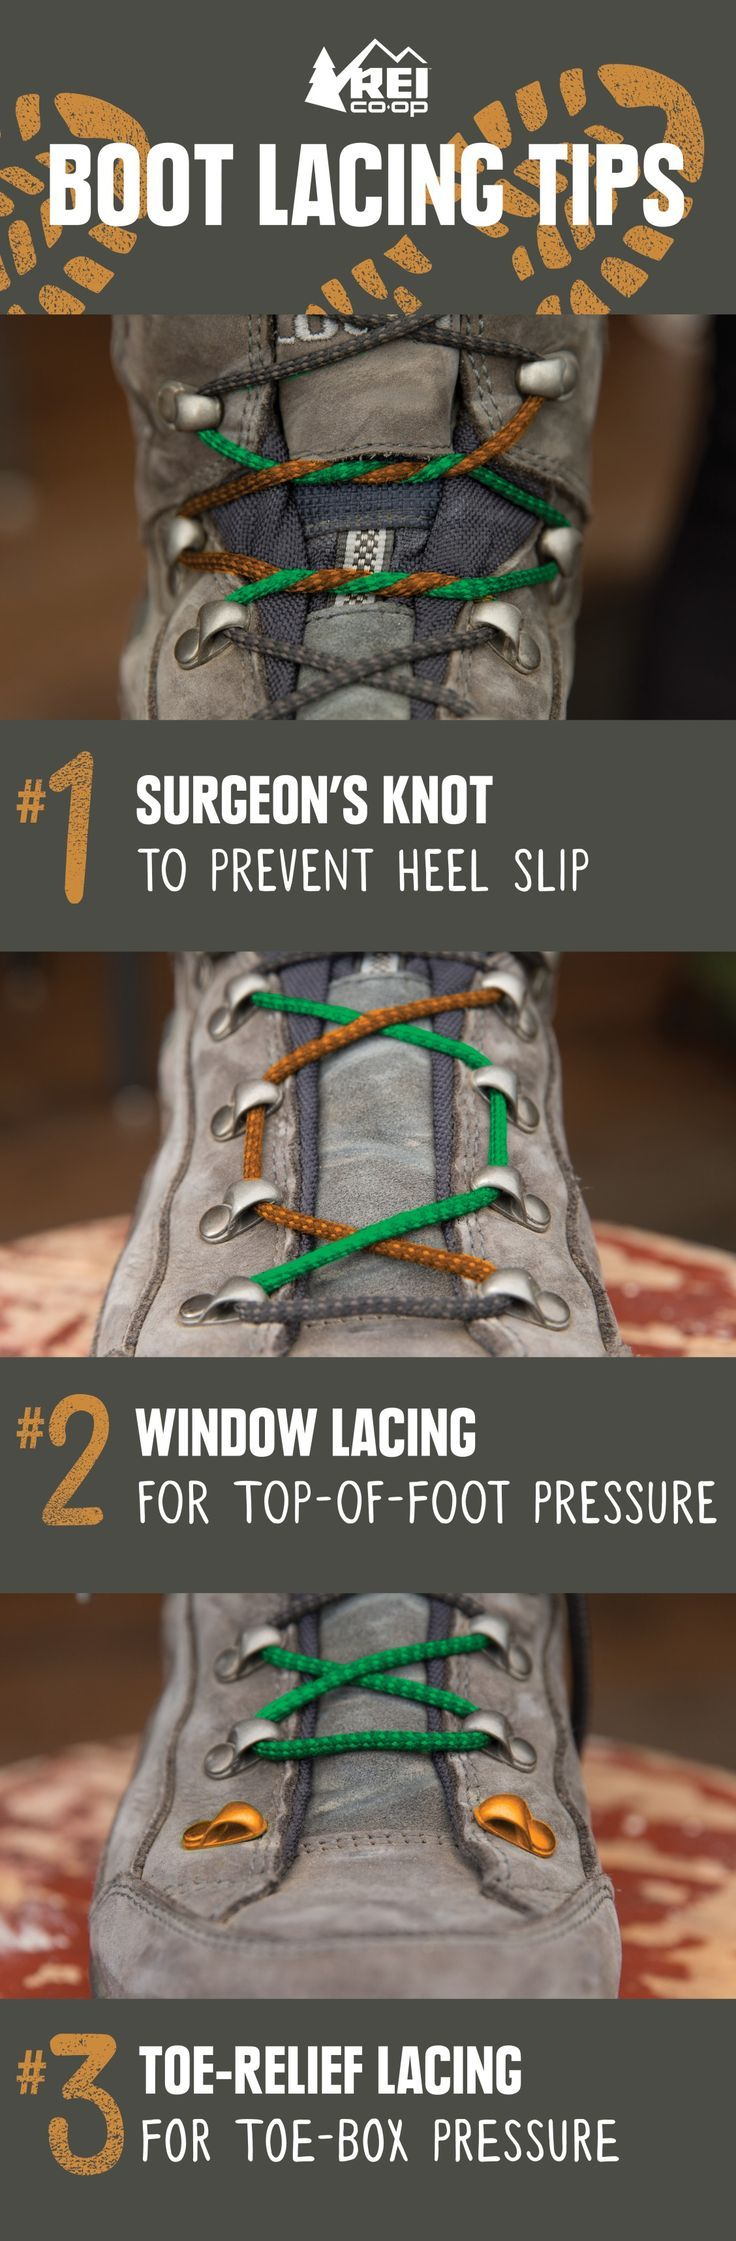 Our friends @REI created this neato chart to help us learn a few new lacing tricks that could help improve hiking boot comfort!